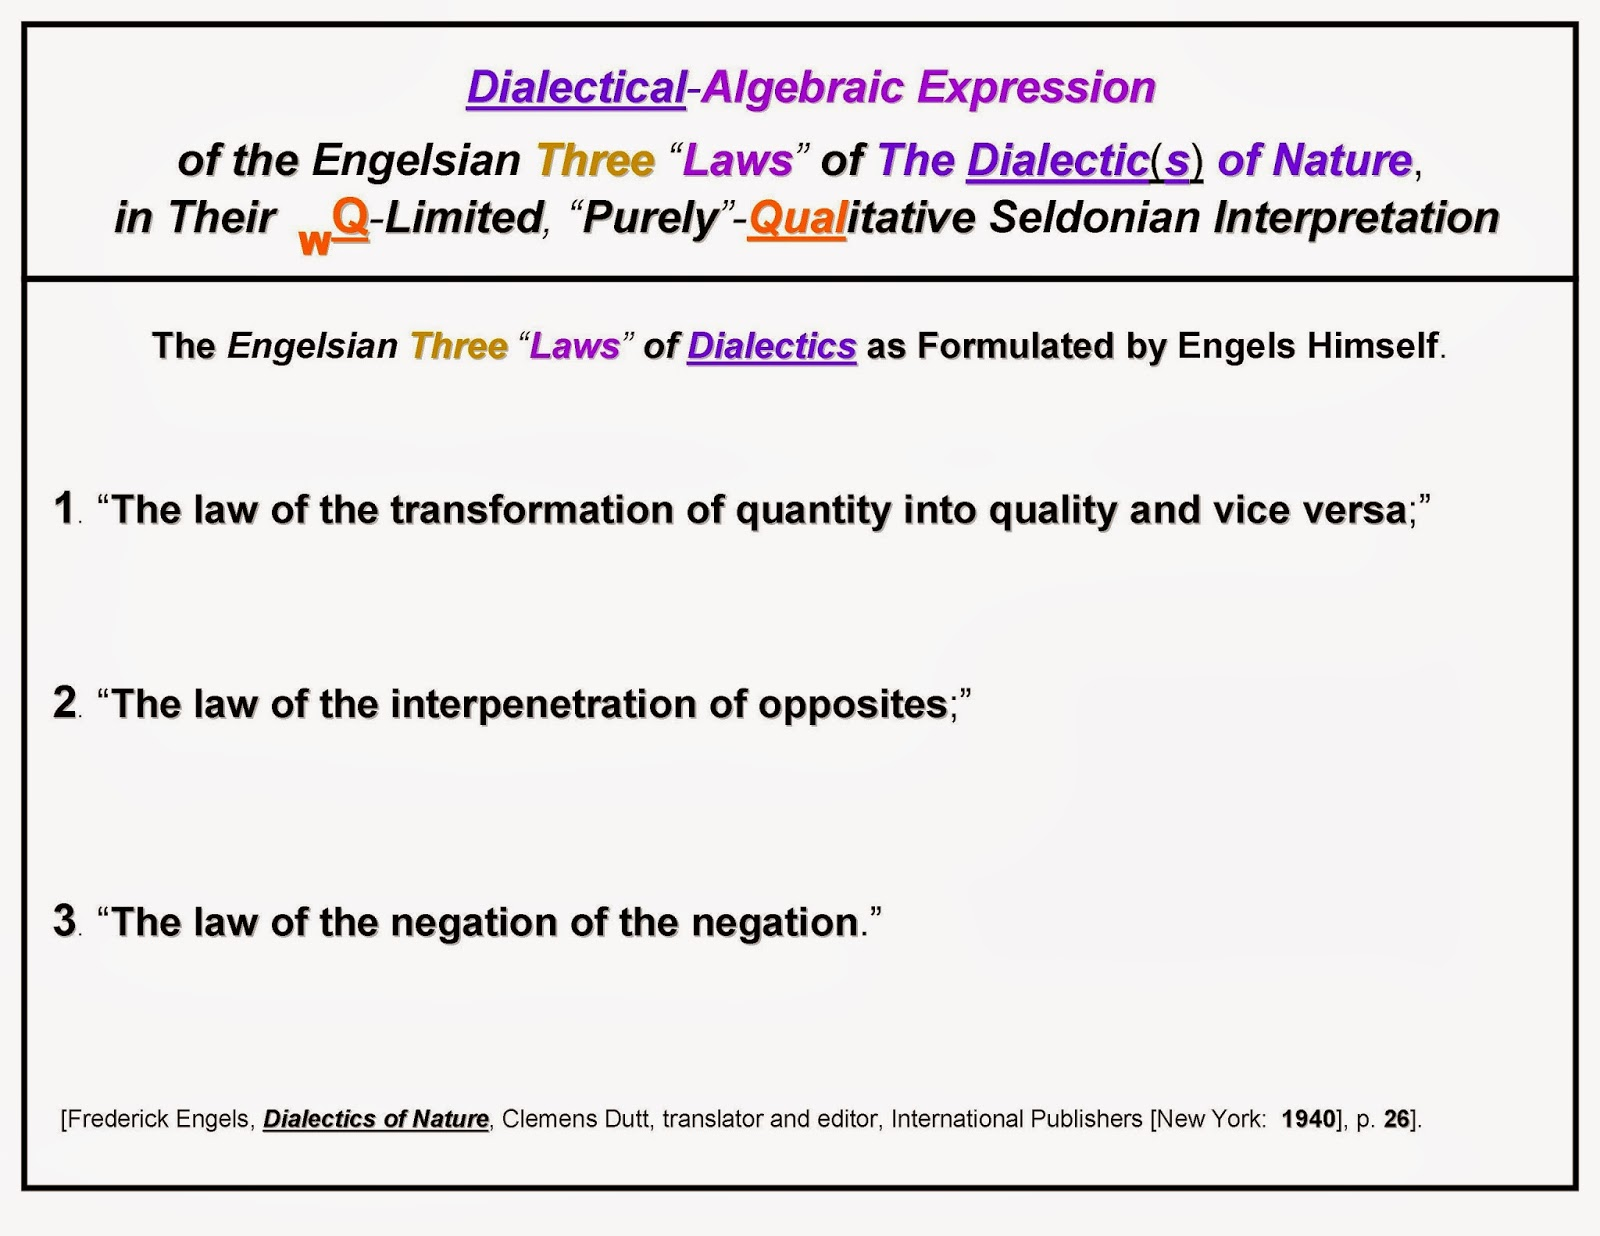 the law of negation